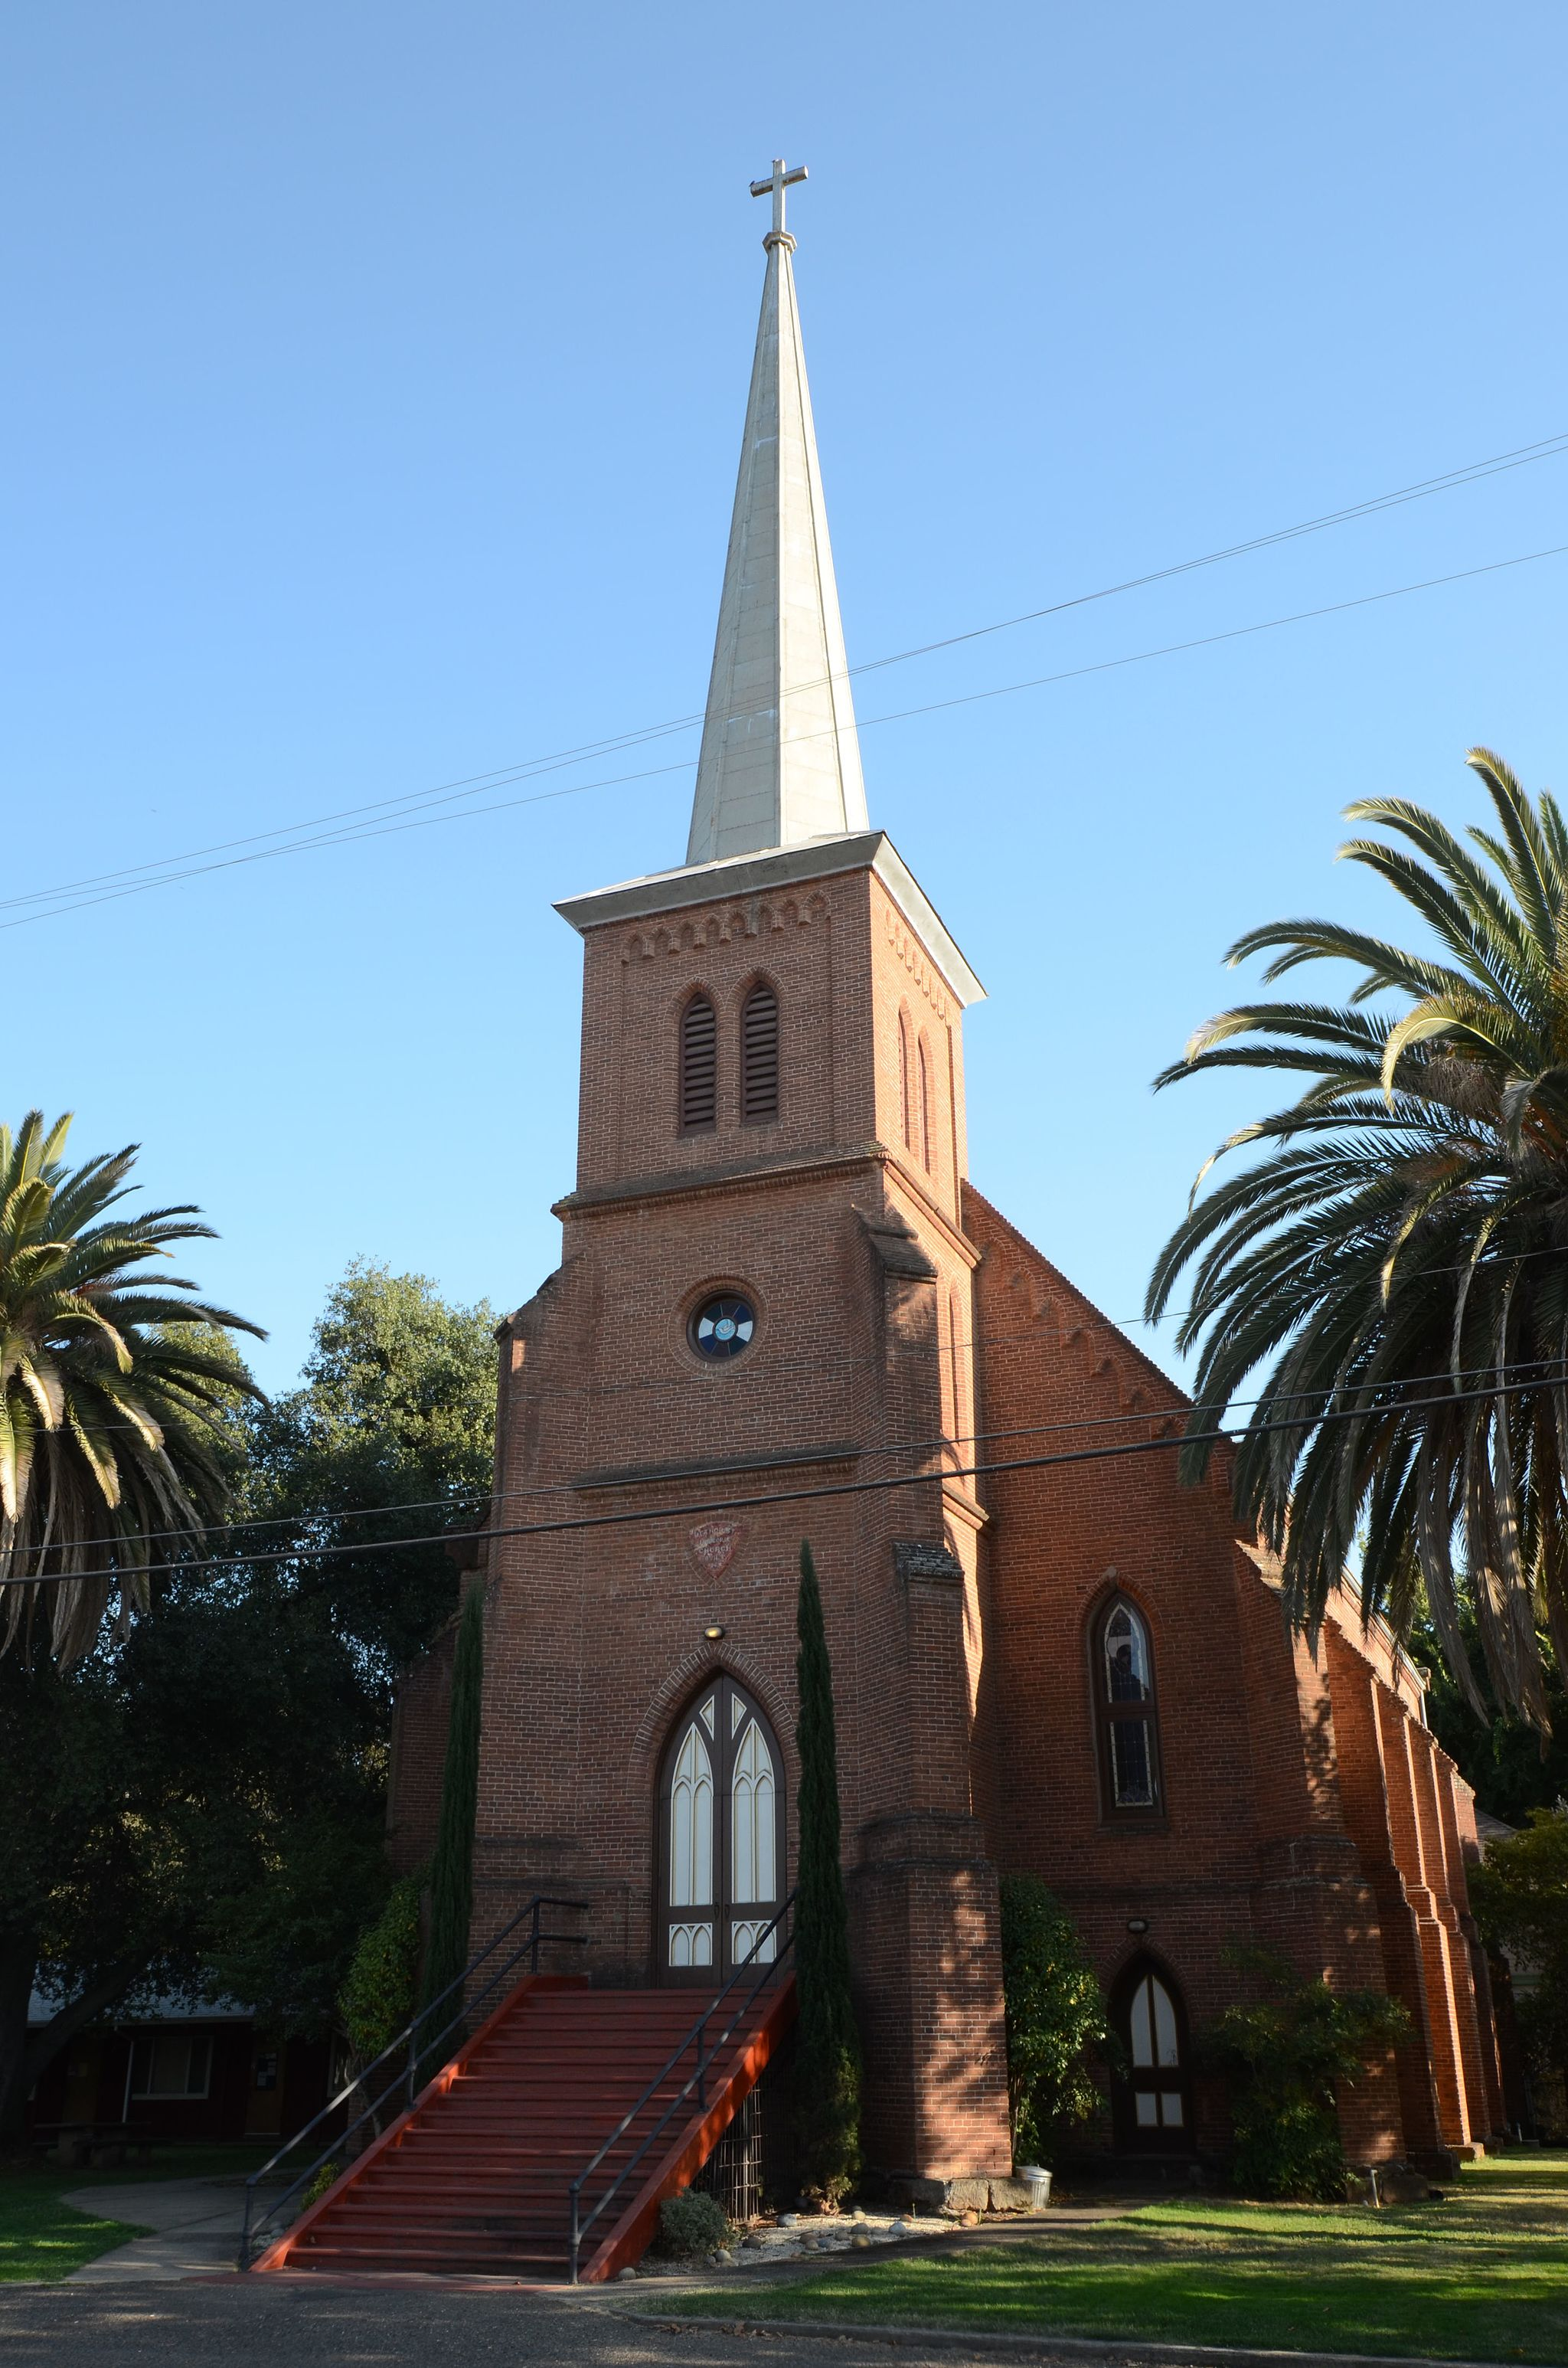 Ione_City_Centenary_Church-1